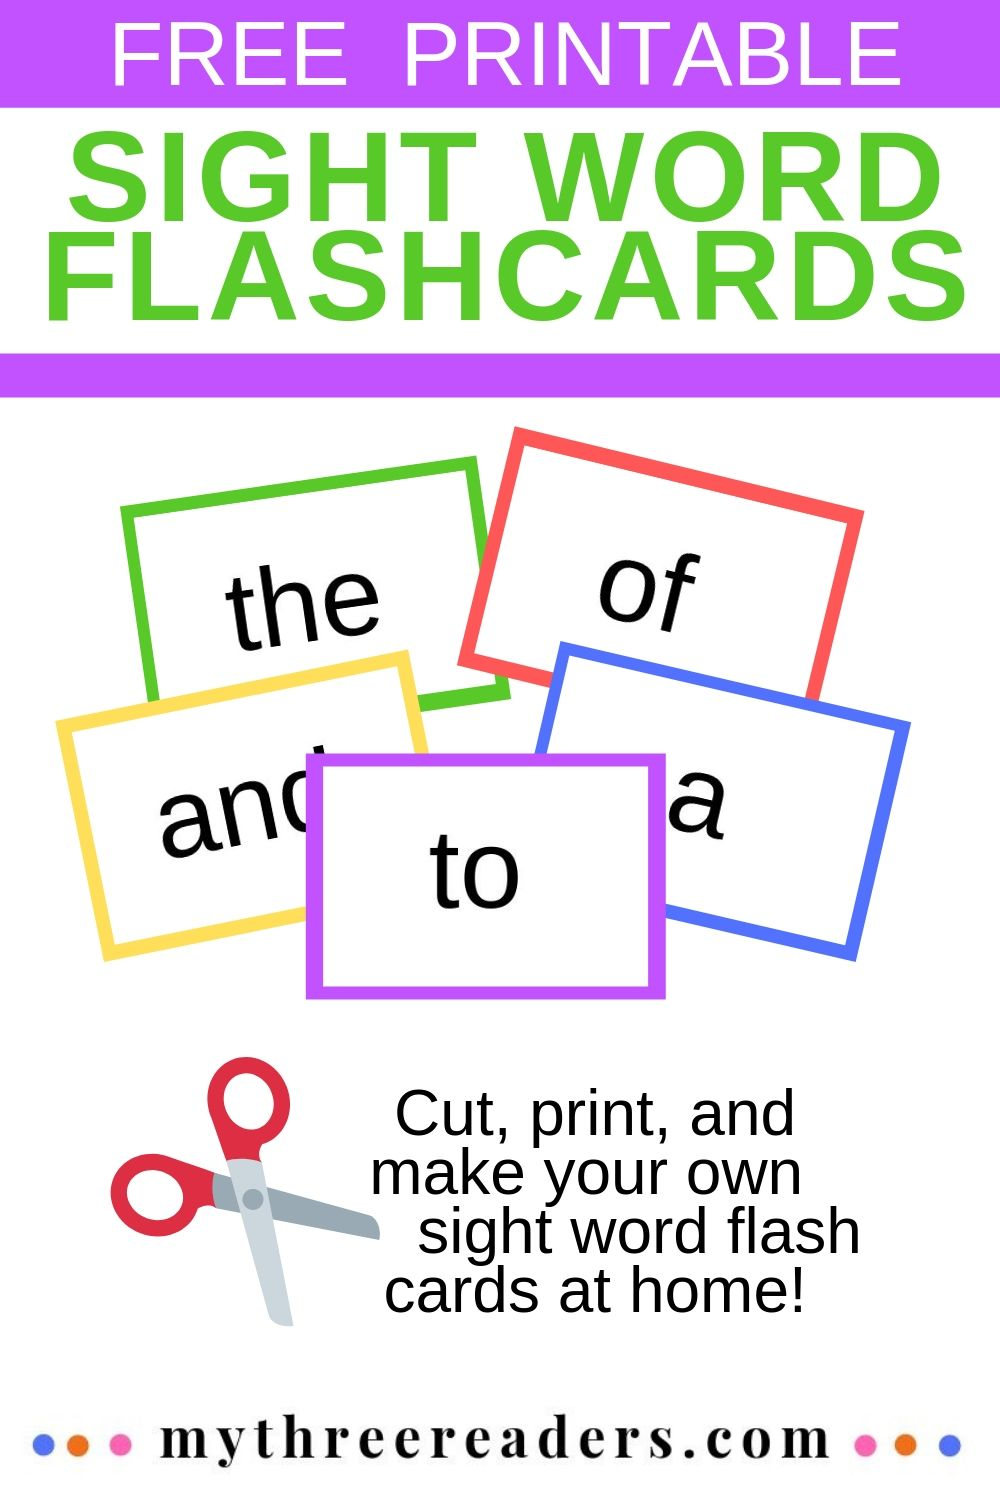 photograph relating to How to Make Printable Flashcards referred to as Deliver Your Personal Sight Term Flash Playing cards - Cost-free, Printable for Oneself!